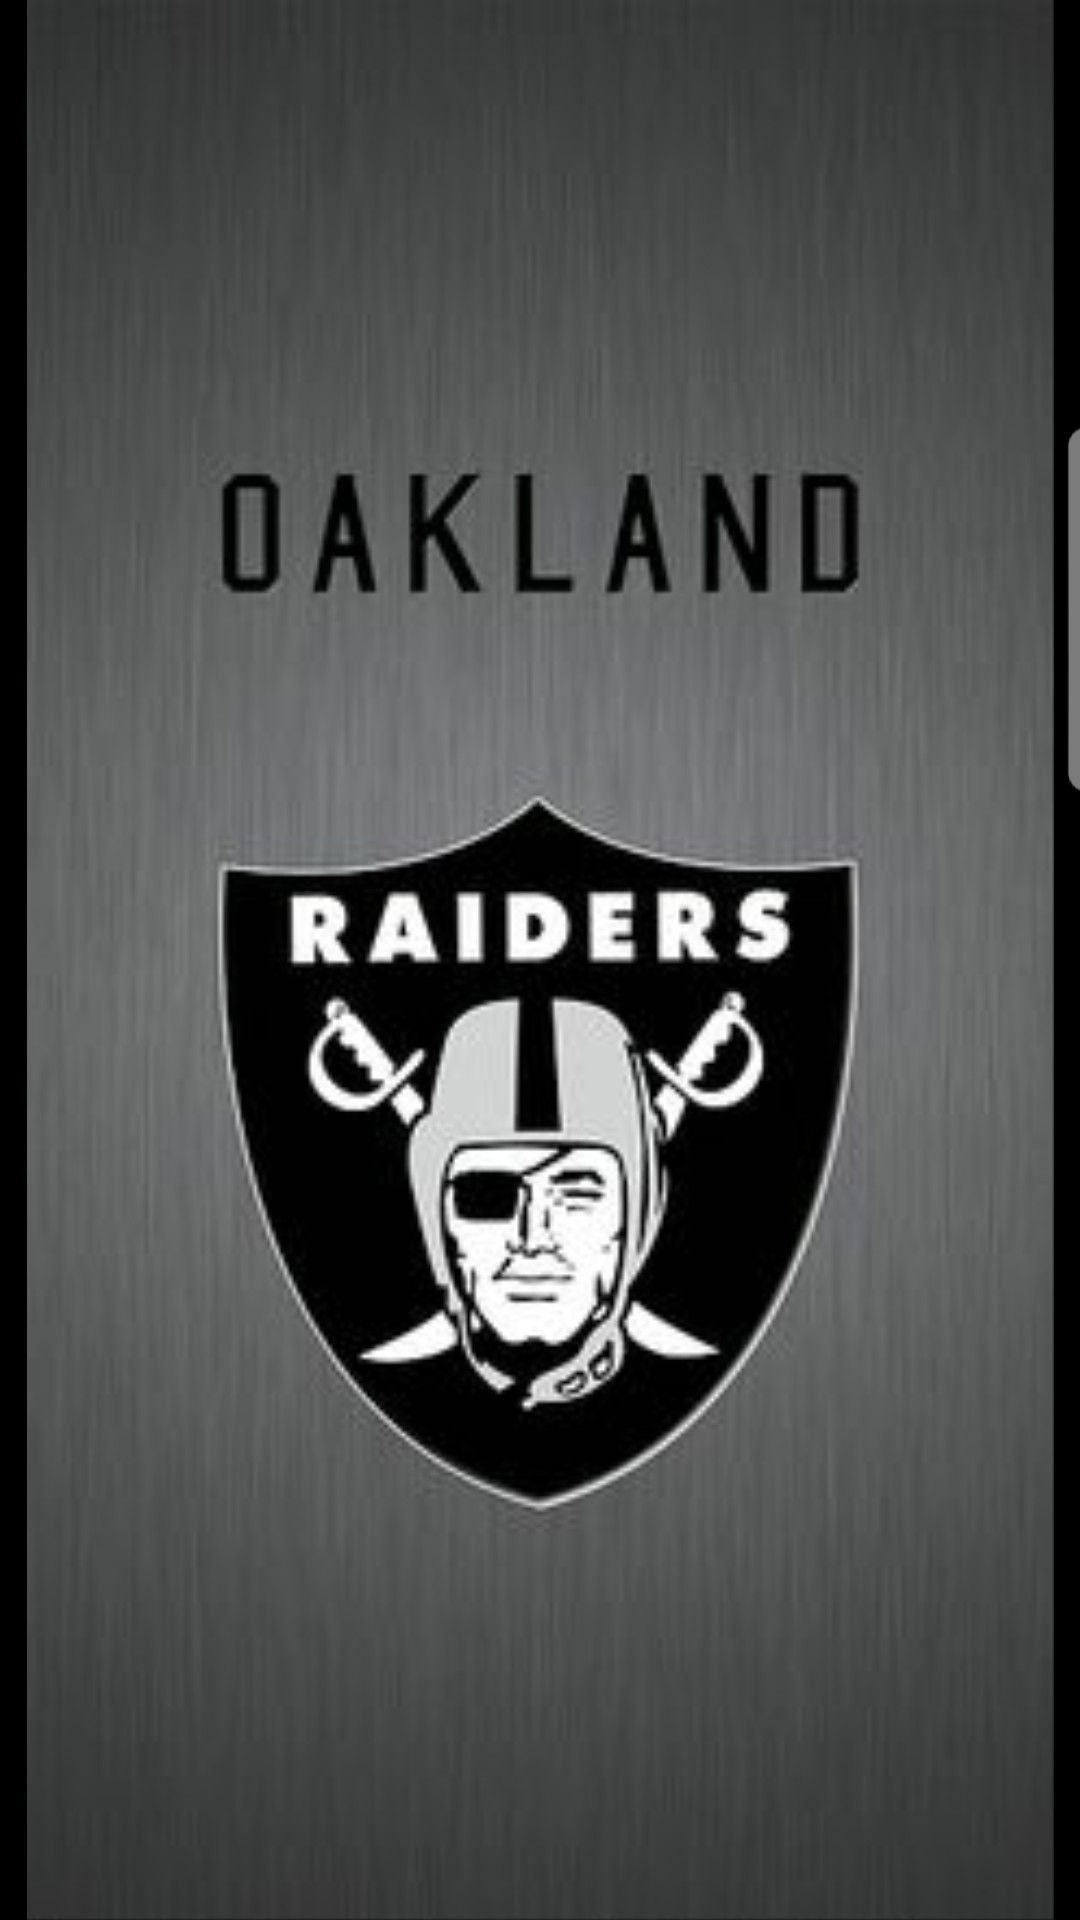 Pin By Archie Douglas On Sportz Wallpaperz Raiders Wallpaper Oakland Raiders Logo Oakland Raiders Wallpapers